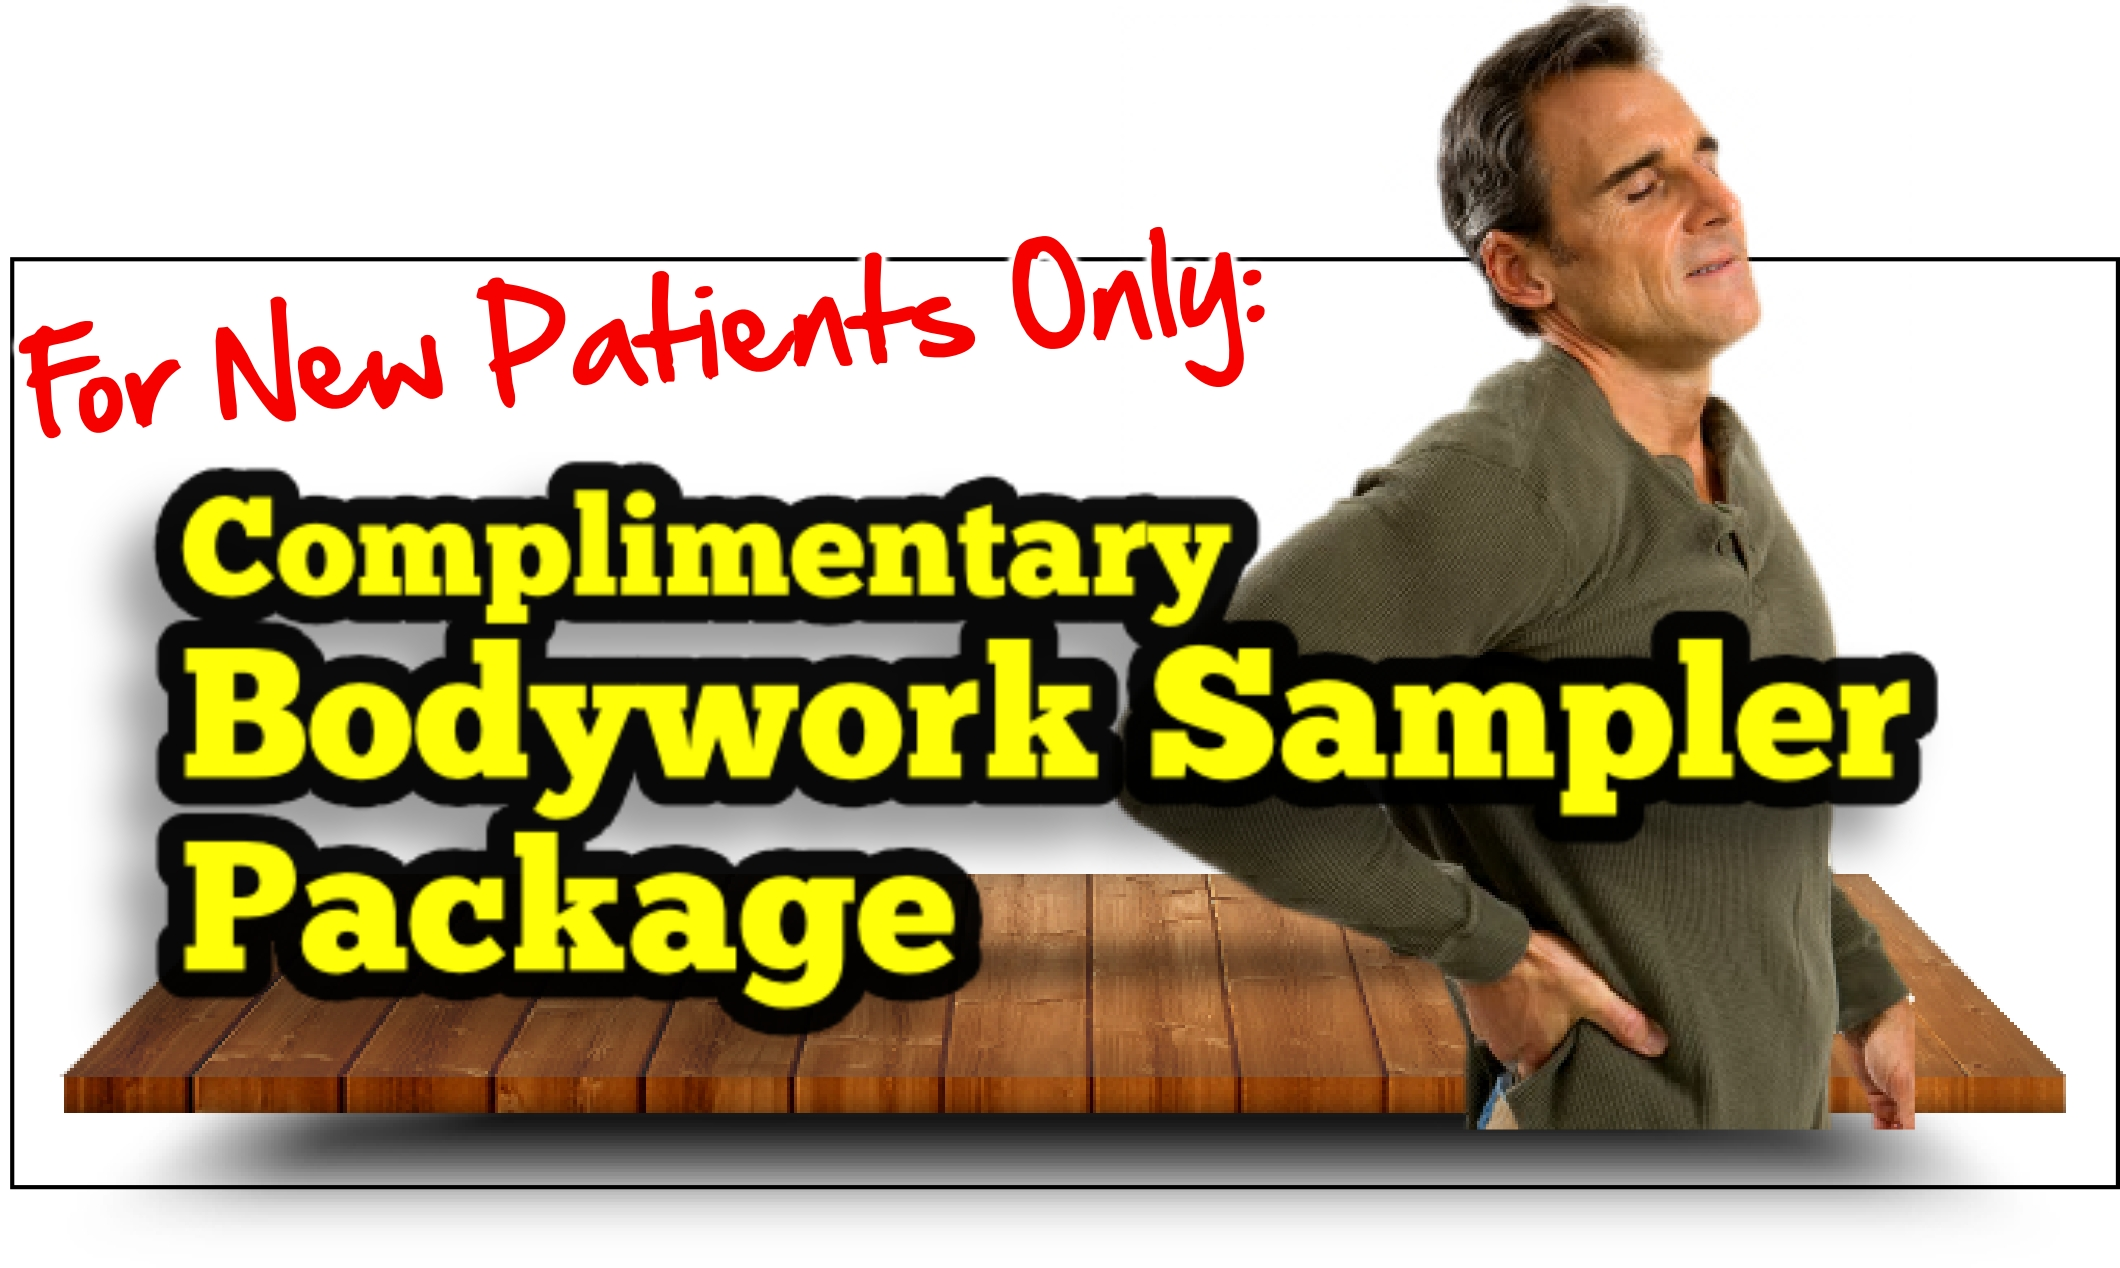 Low back pain? Let us help you get better with a free sampler package!